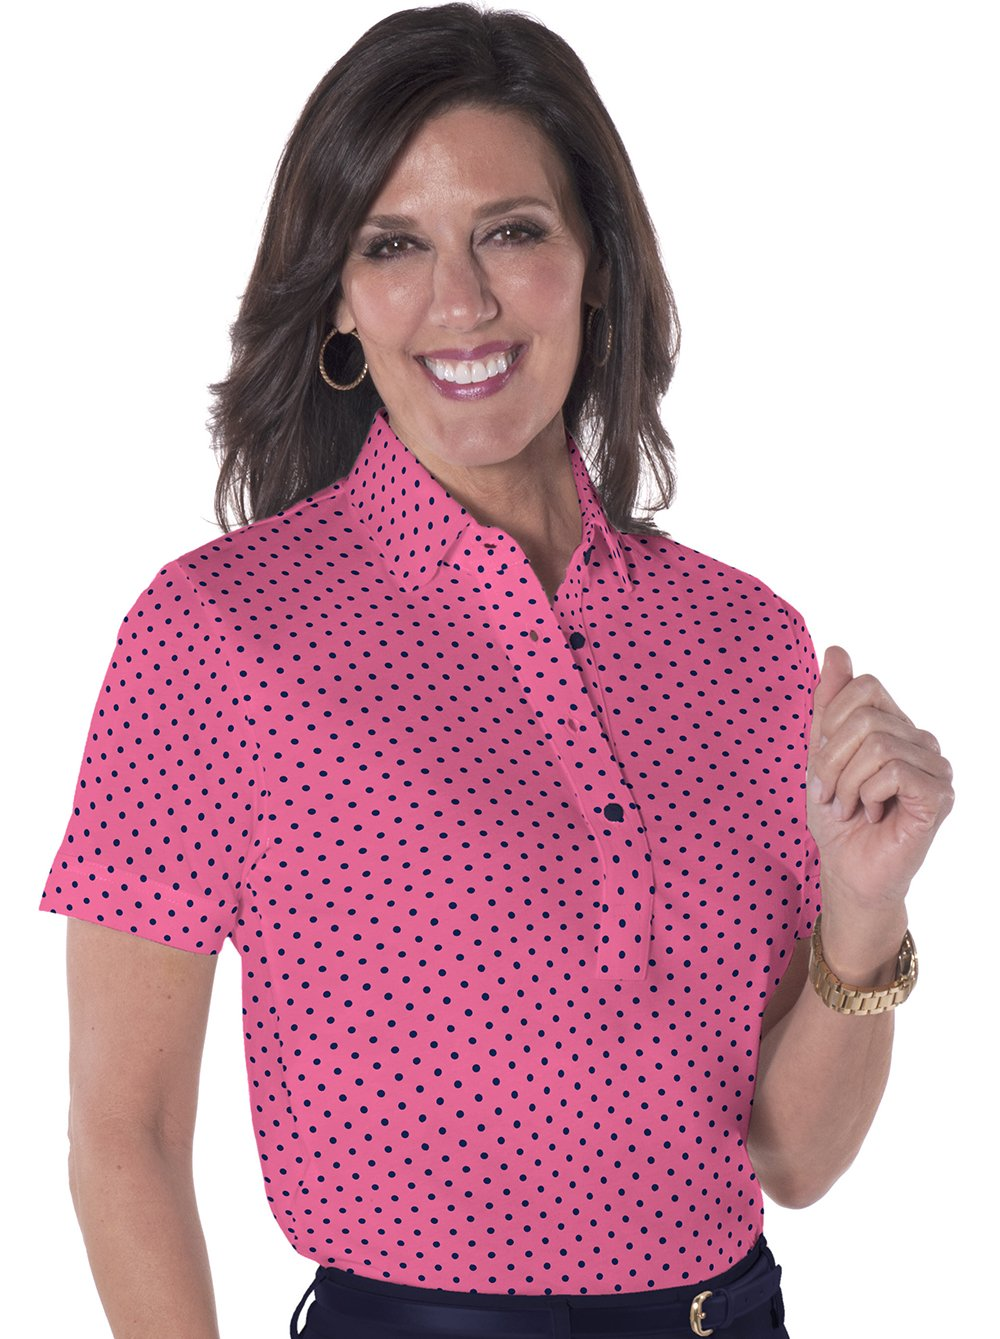 Ladies Short Sleeve Print Polo Shirts</br>Dot'cha! 16G - Leonlevin